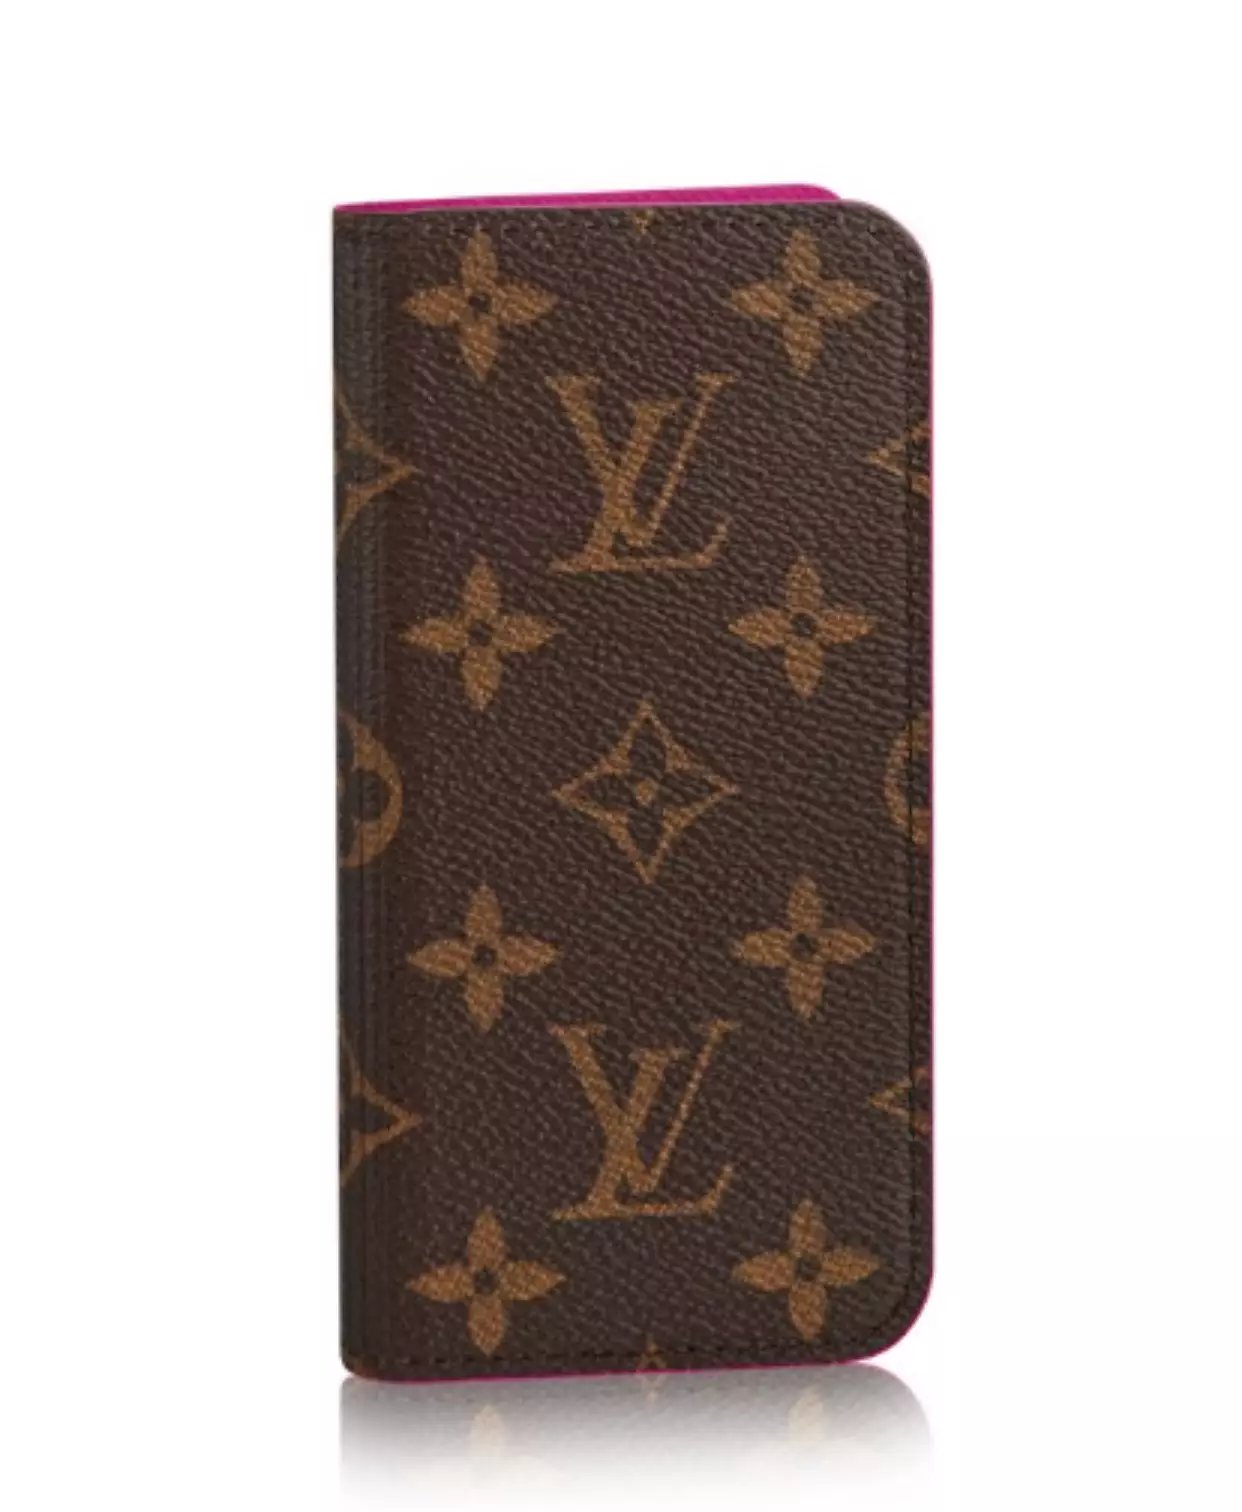 iphone hülle bedrucken iphone hüllen günstig Louis Vuitton iphone7 hülle iphone 7 stossfeste hülle iphone 7 silikonhülle schutzhülle iphone handyhülle iphone handy ca7 bedrucken las7n ledertasche iphone